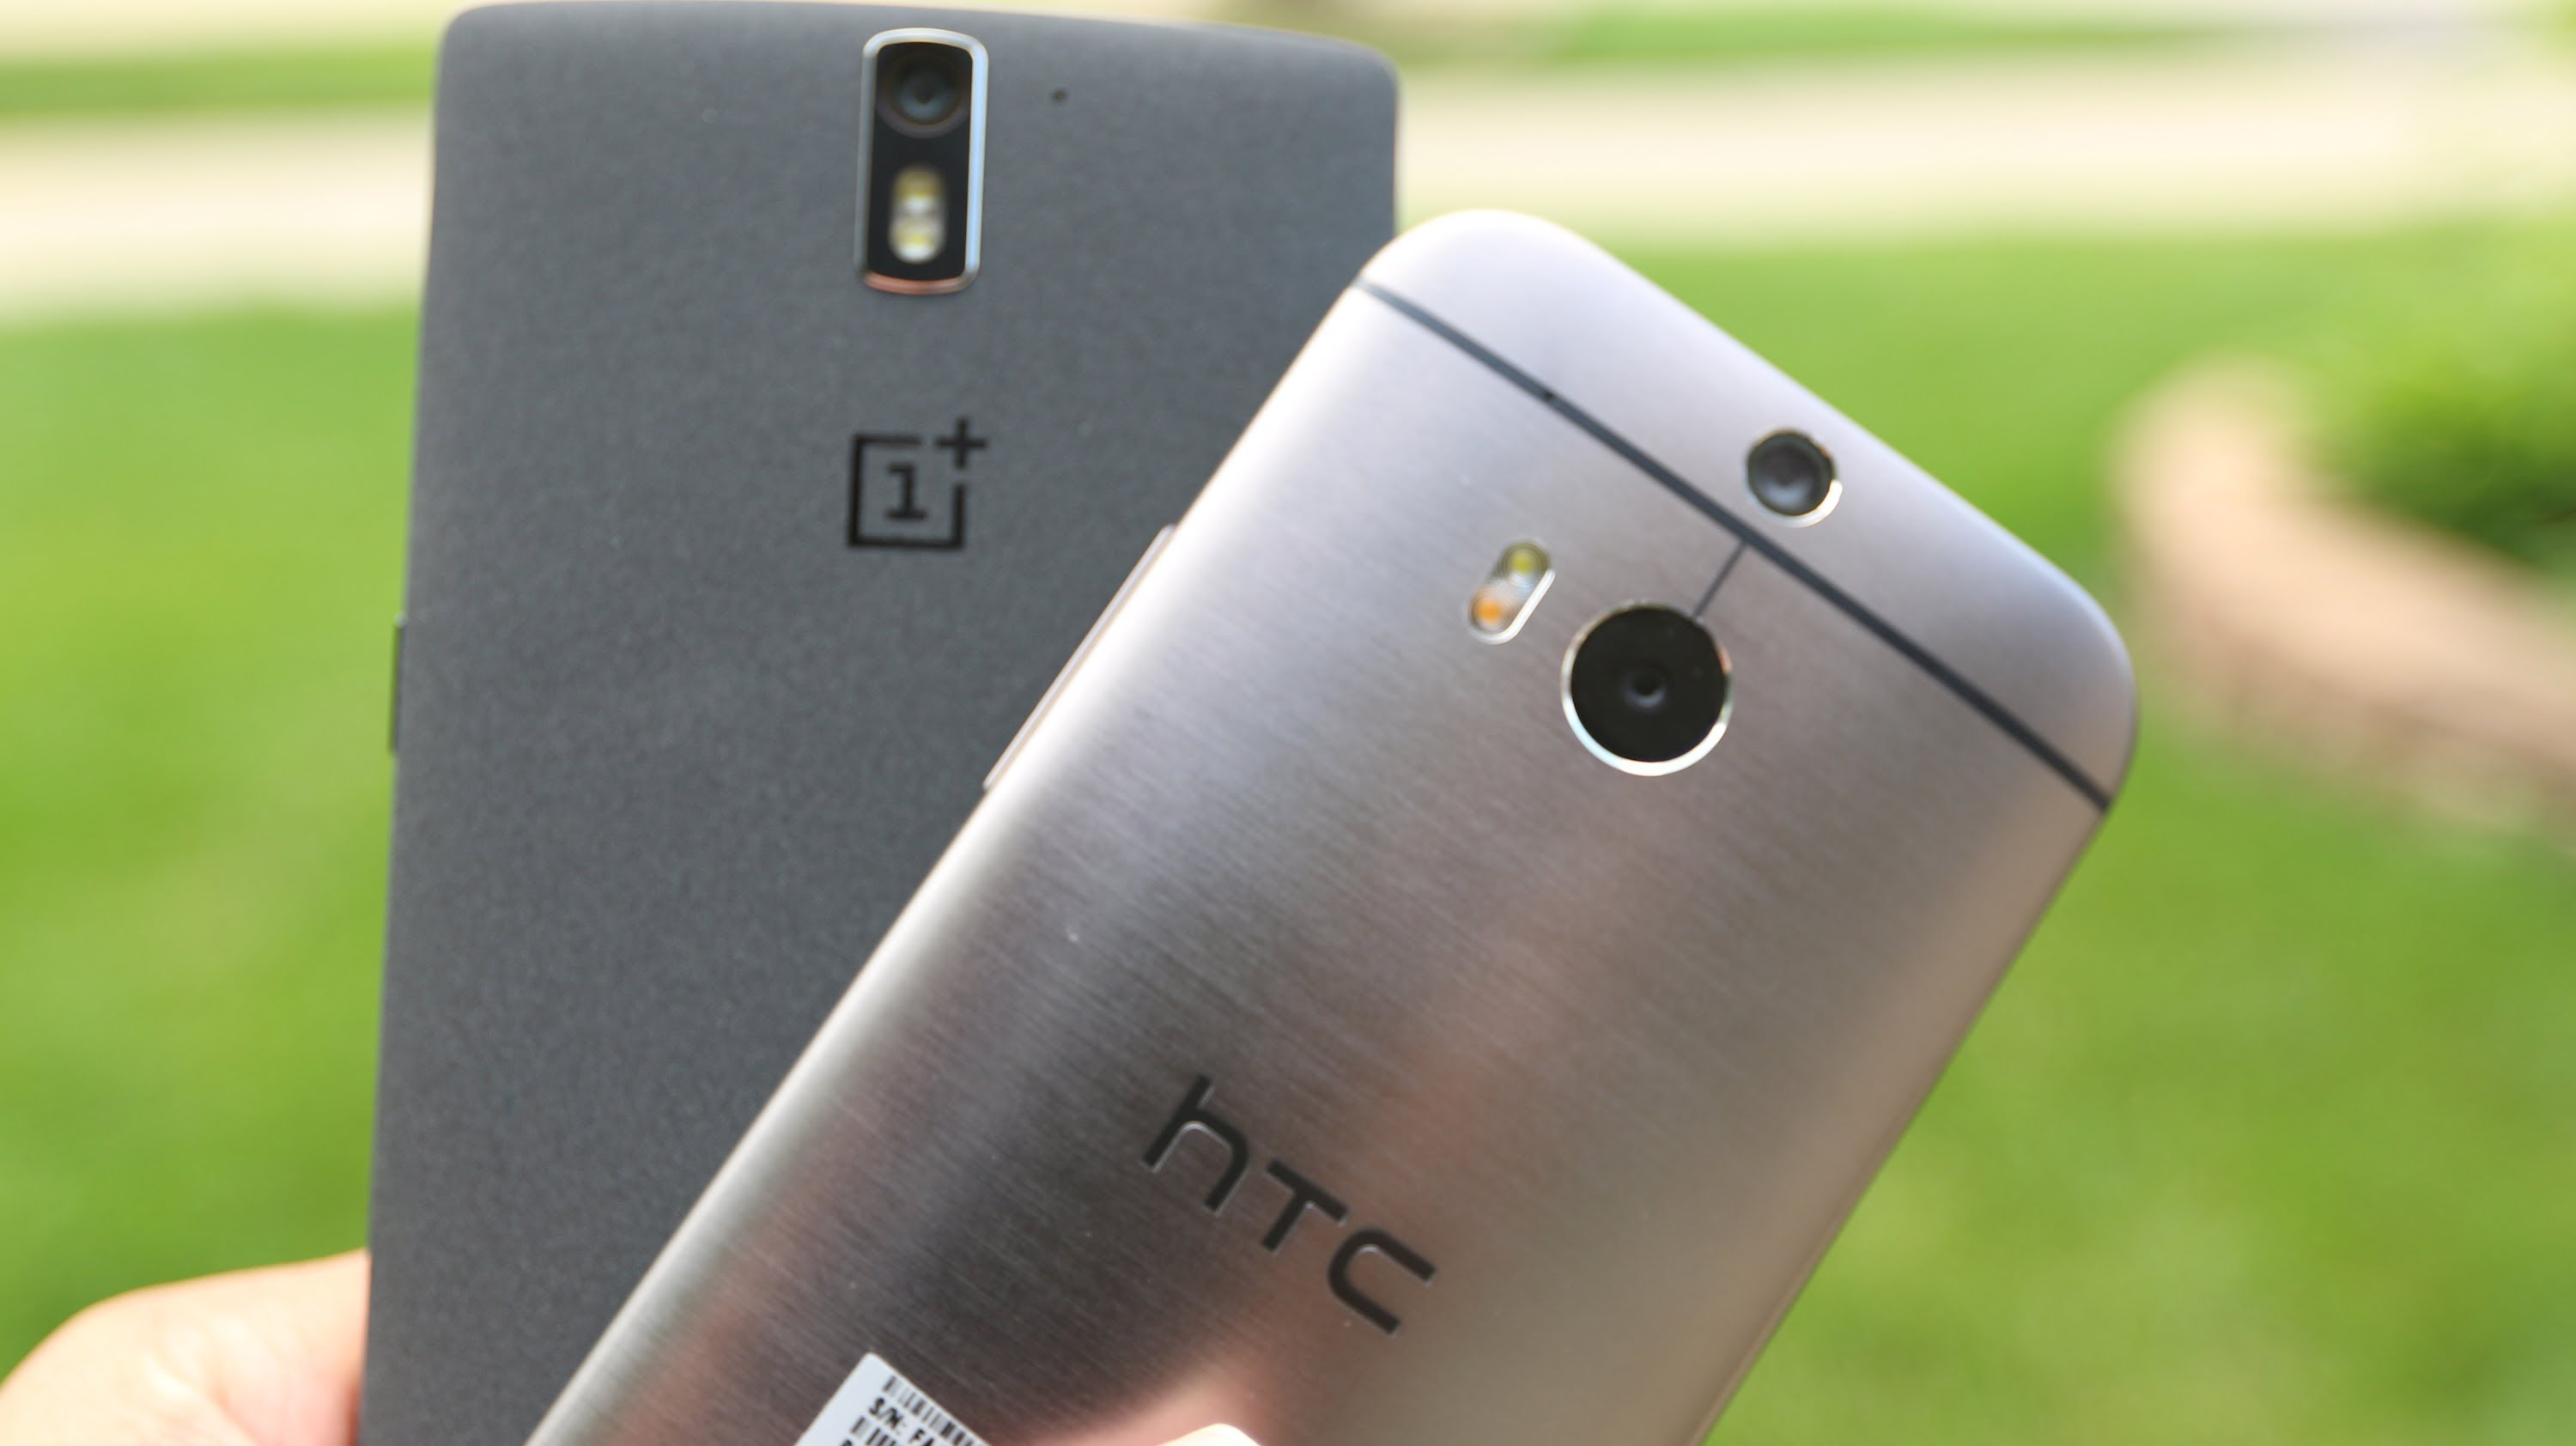 oneplus-one-vs-htc-one-m8-camera-comparison-short-quick